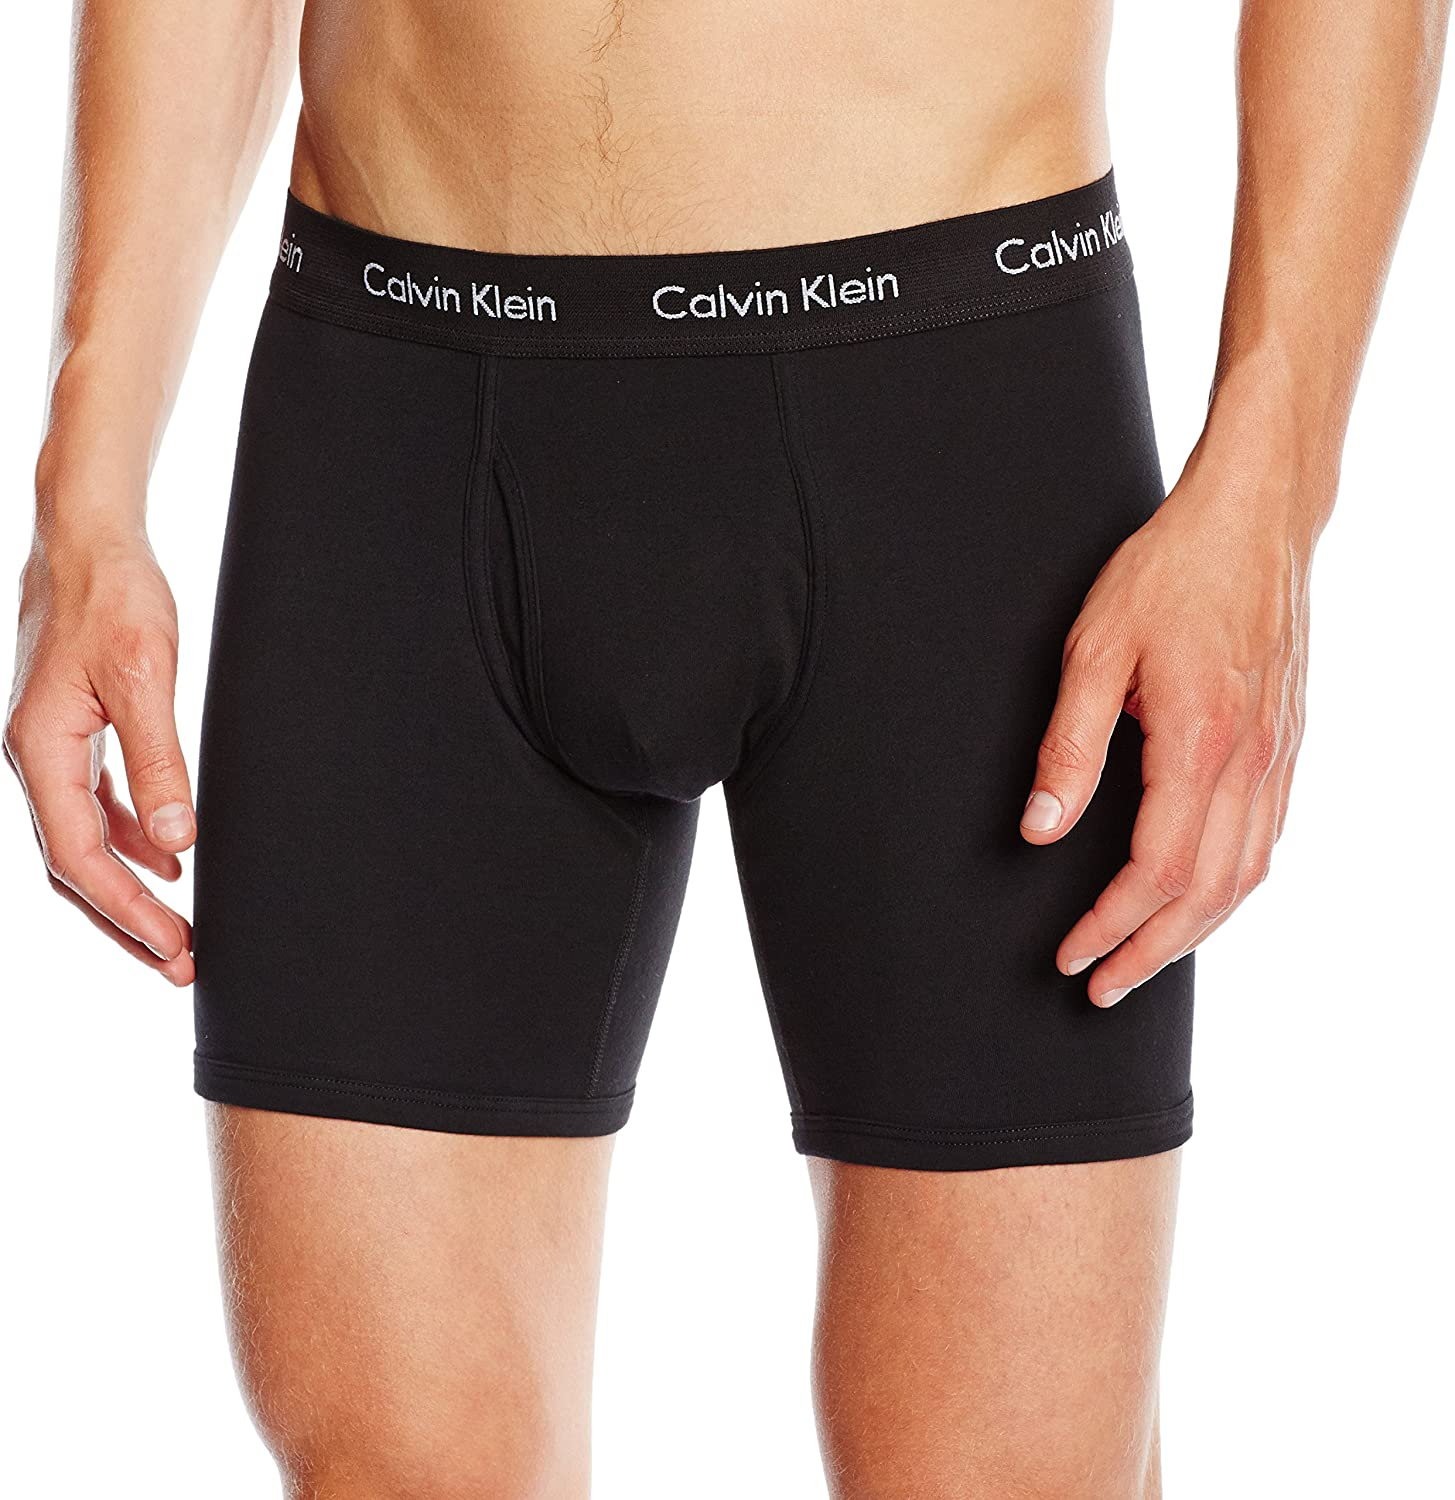 Tommy Hilfiger Modern Essentials-Boxer Brief, Black 001, L para Hombre